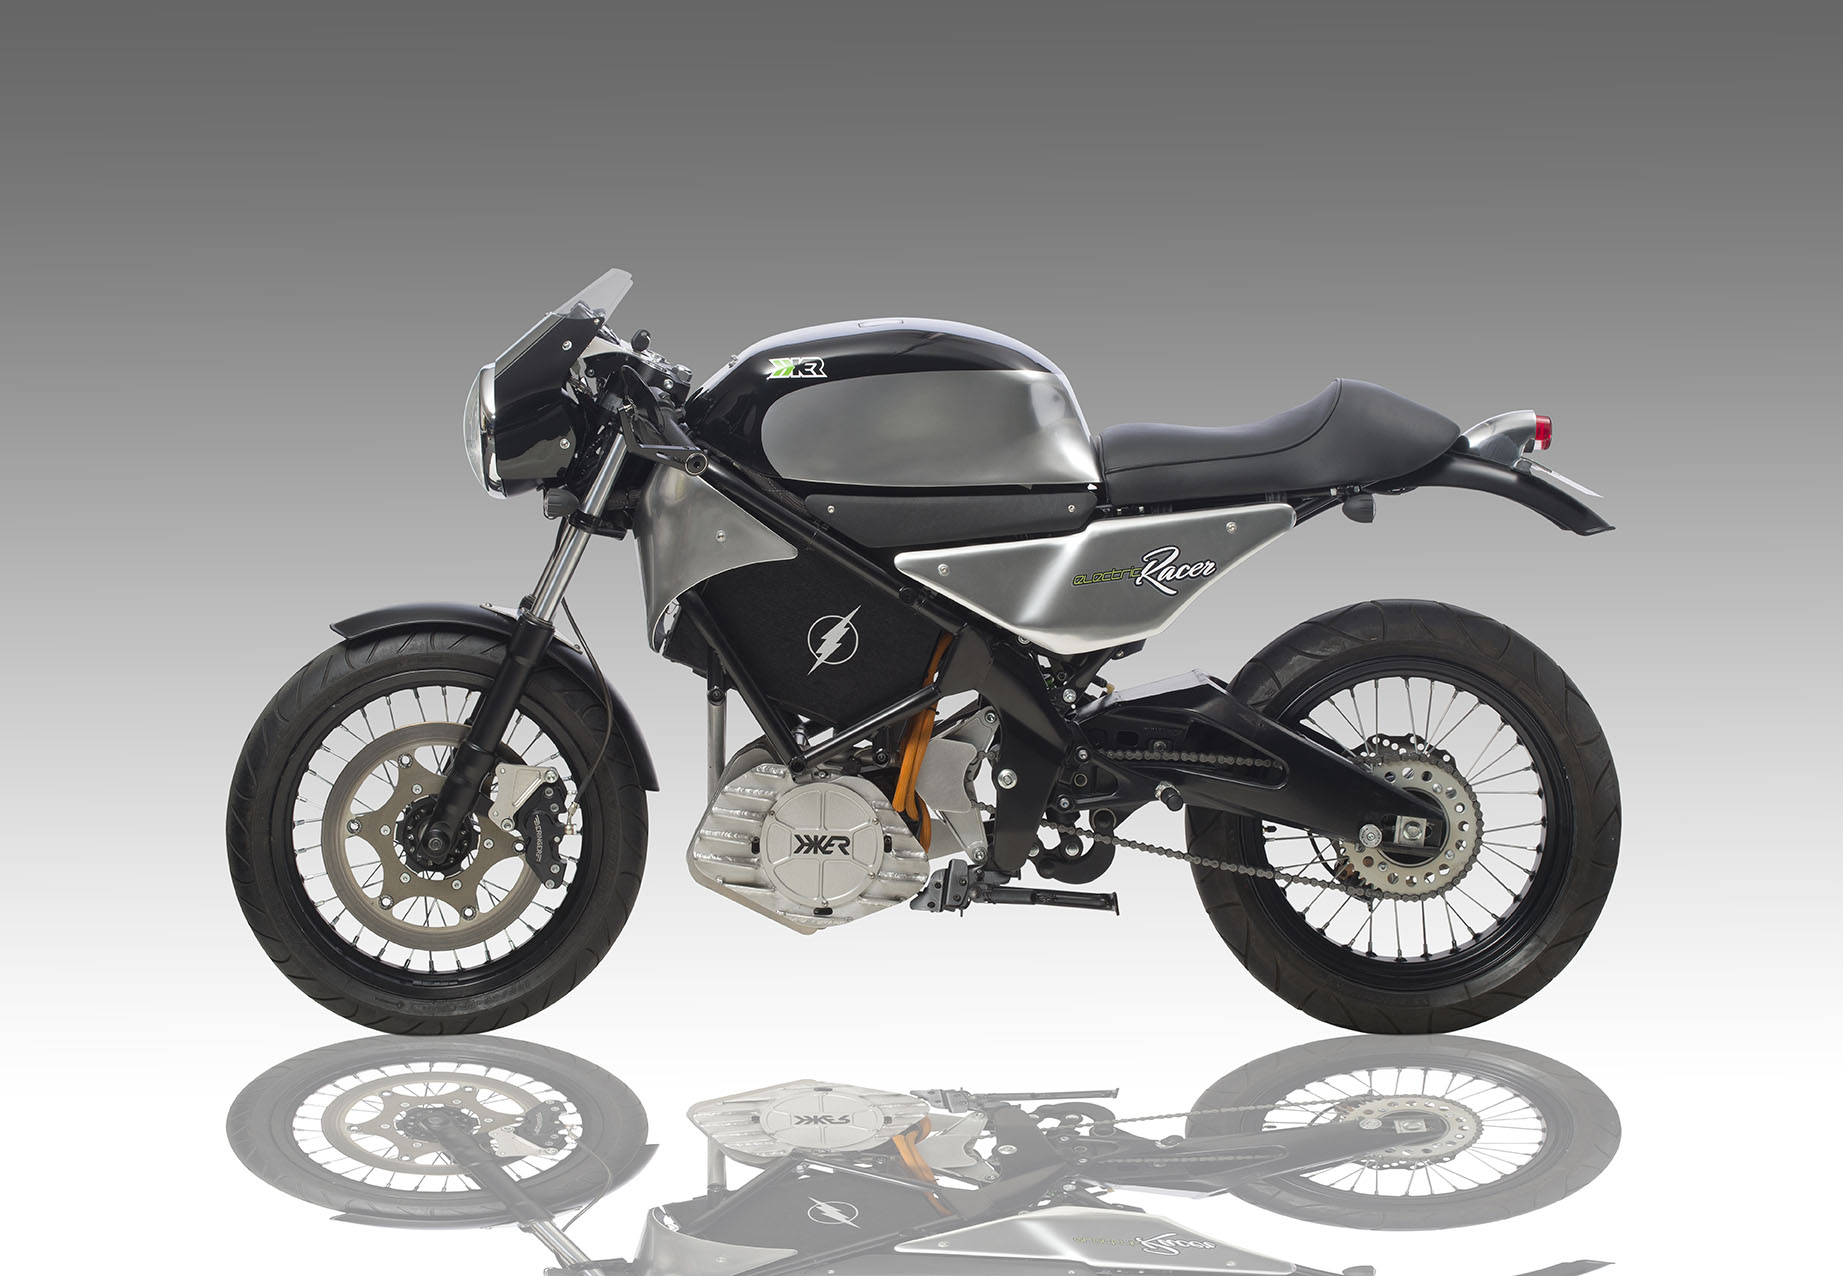 H Ker Electric Cafe Racer Price Announced Autoevolution